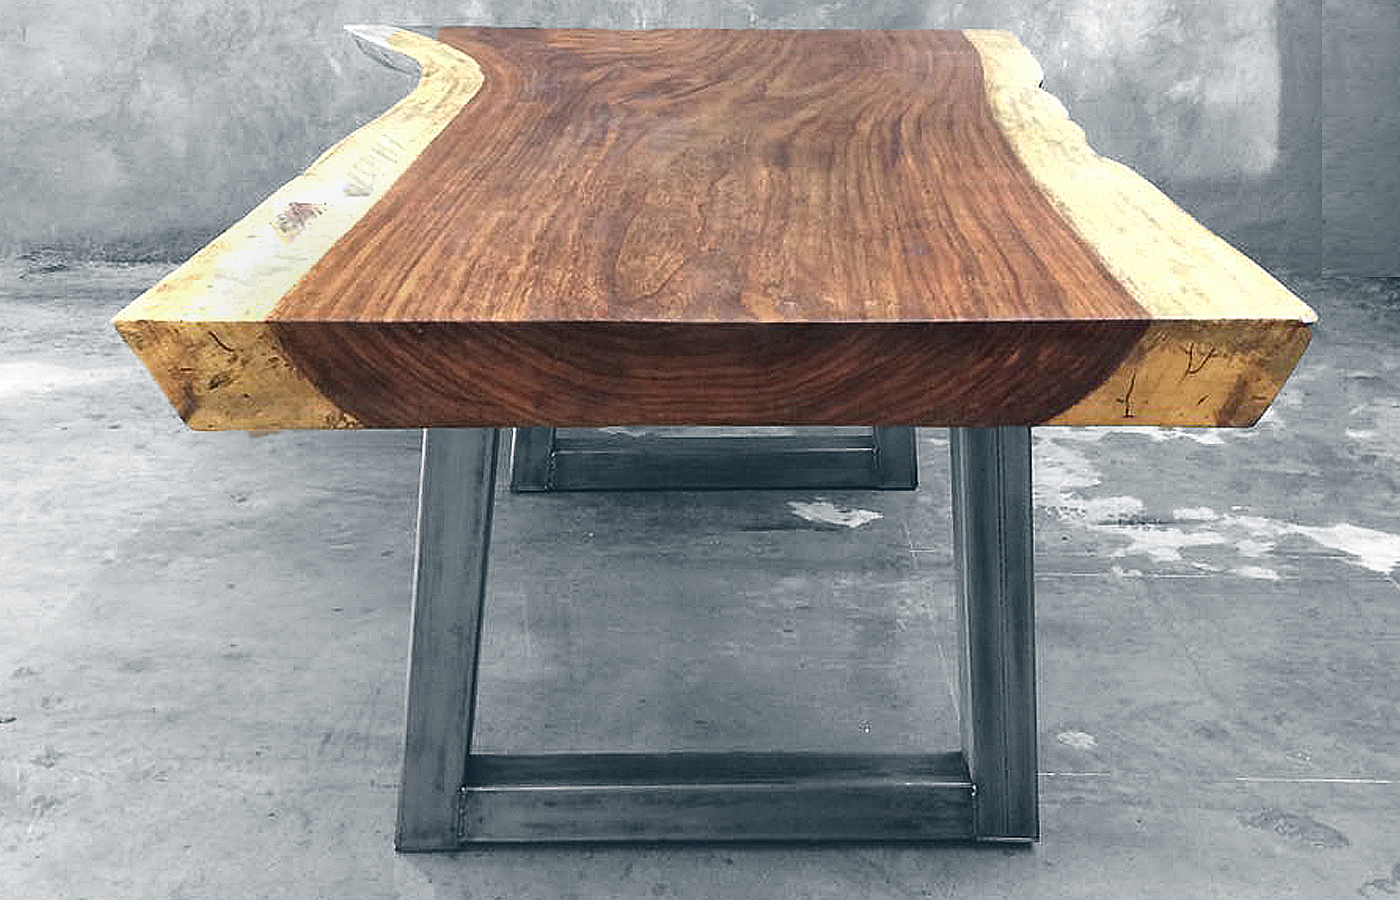 Wood & Metal Tables